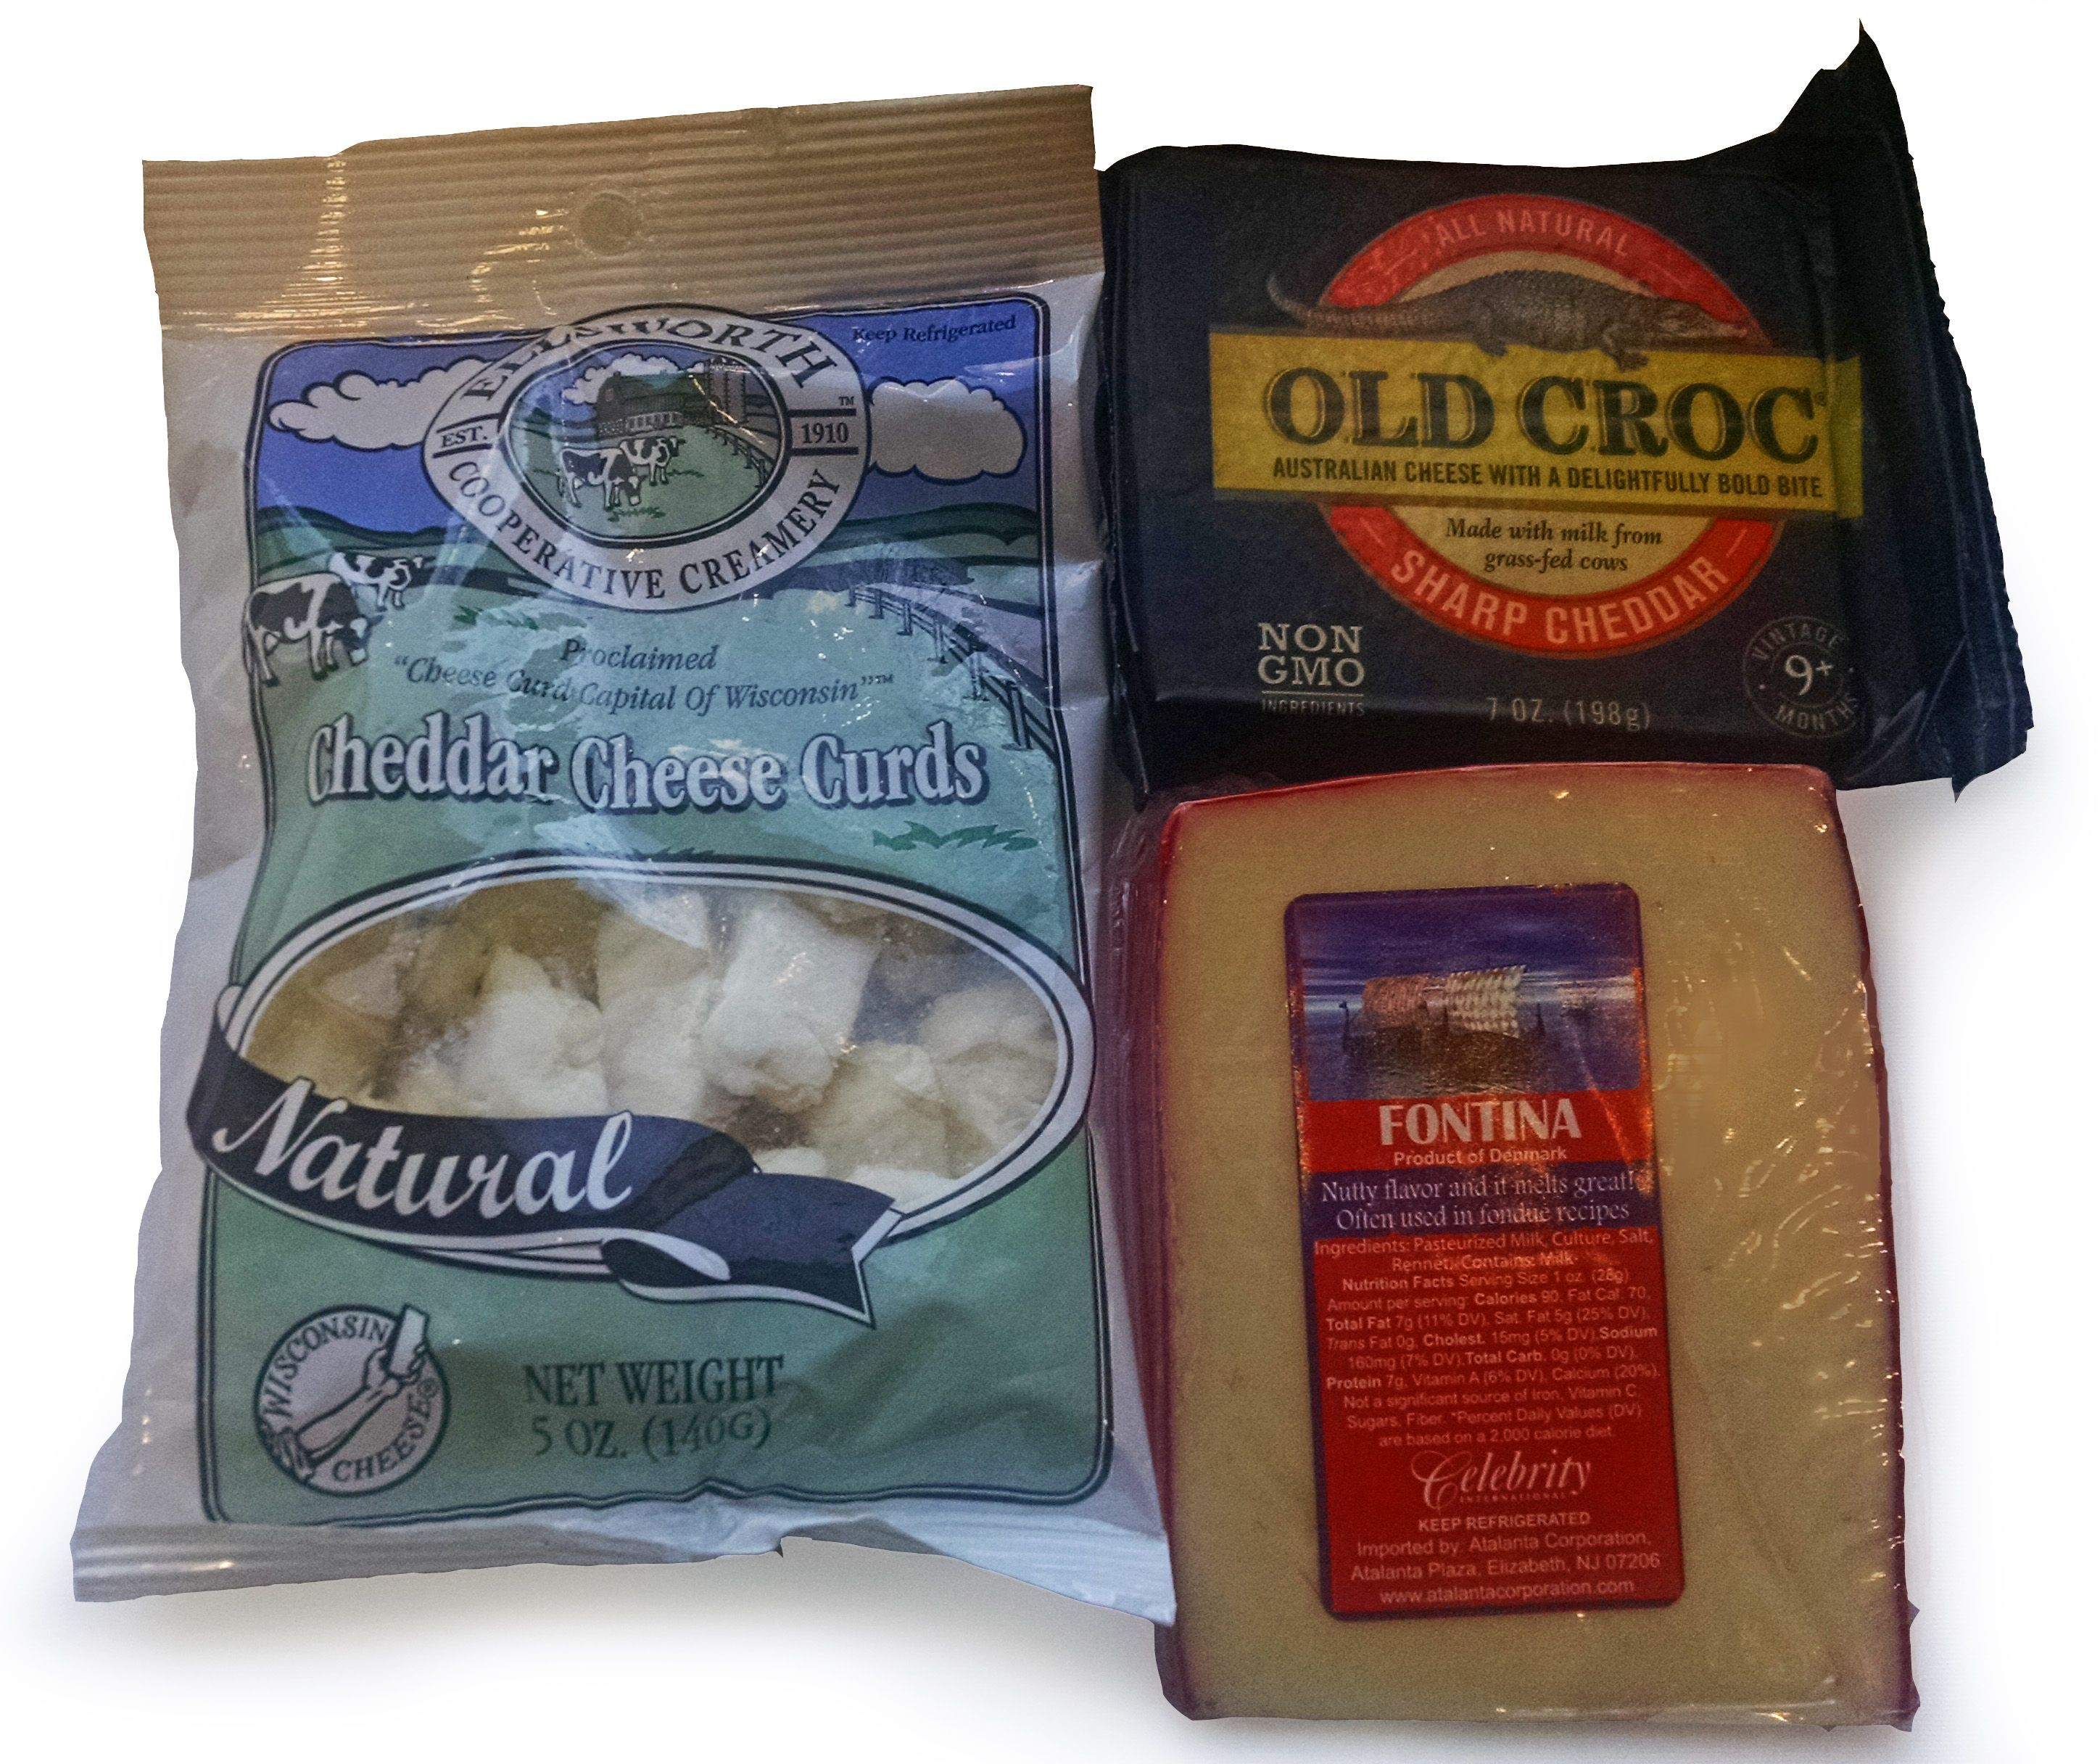 Ring in the new year with a new Cheese of the Month subscription